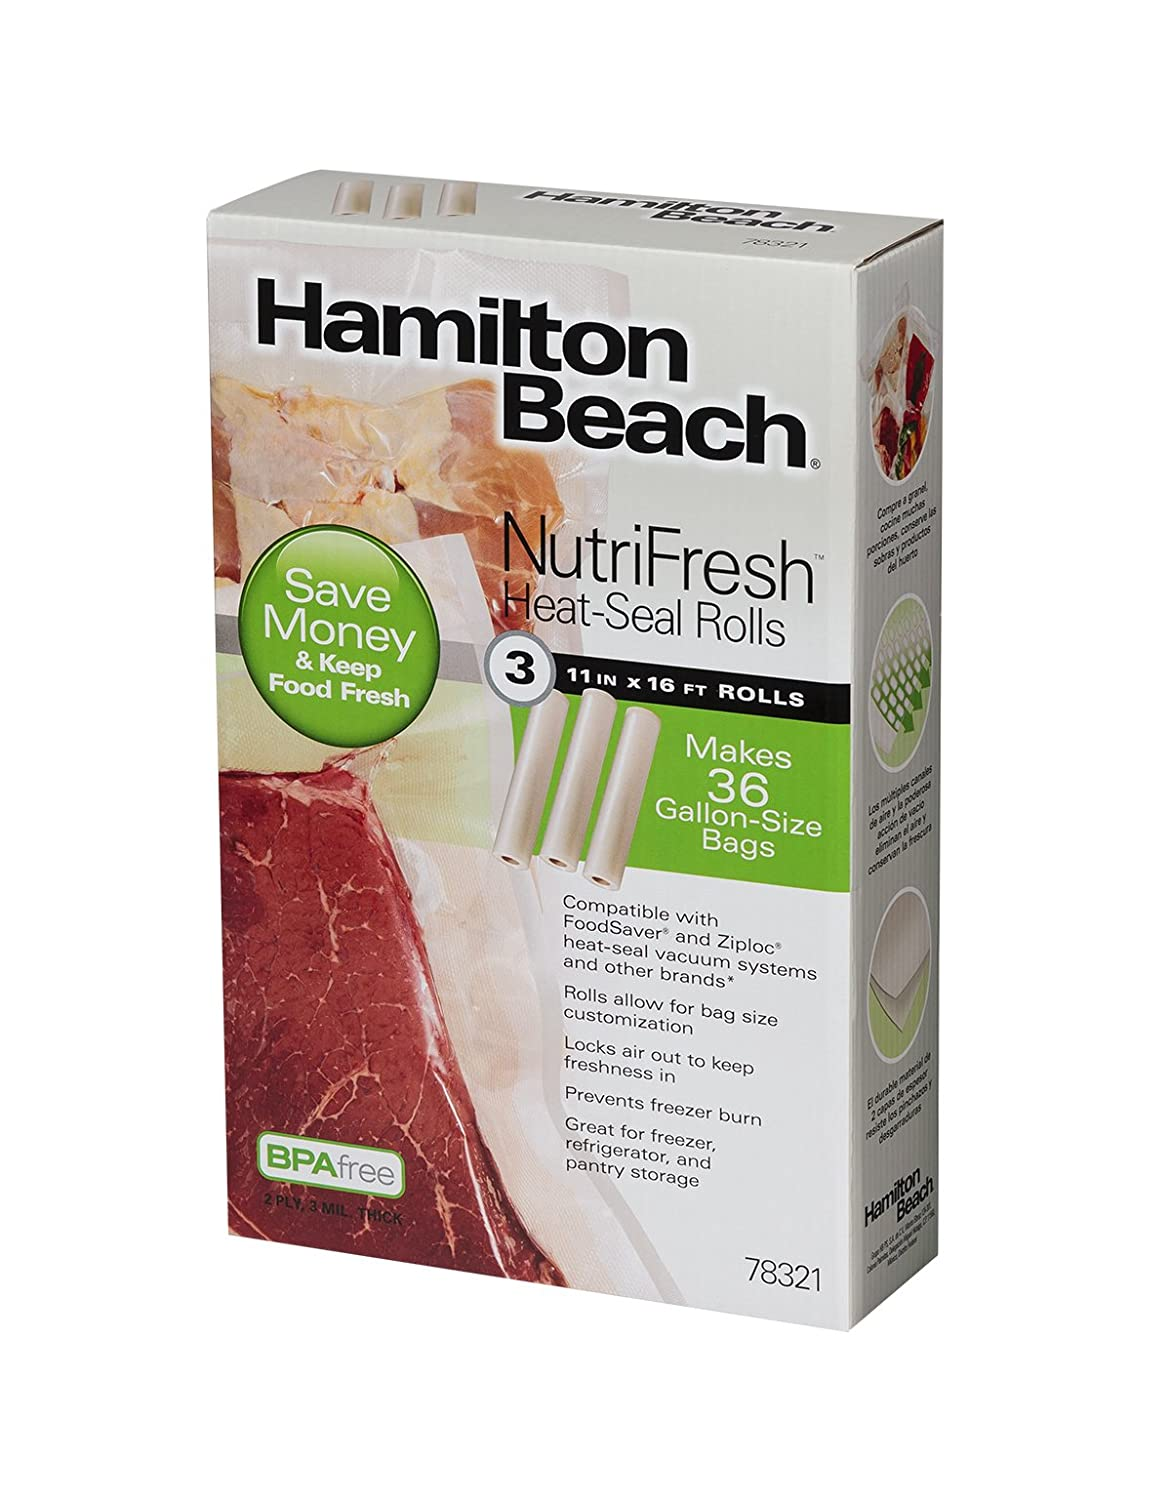 Hamilton Beach Vacuum Sealer, (3-Pack) 11 in x 16 ft Rolls for NutriFresh, FoodSaver & Other Heat-Seal Systems (78321)